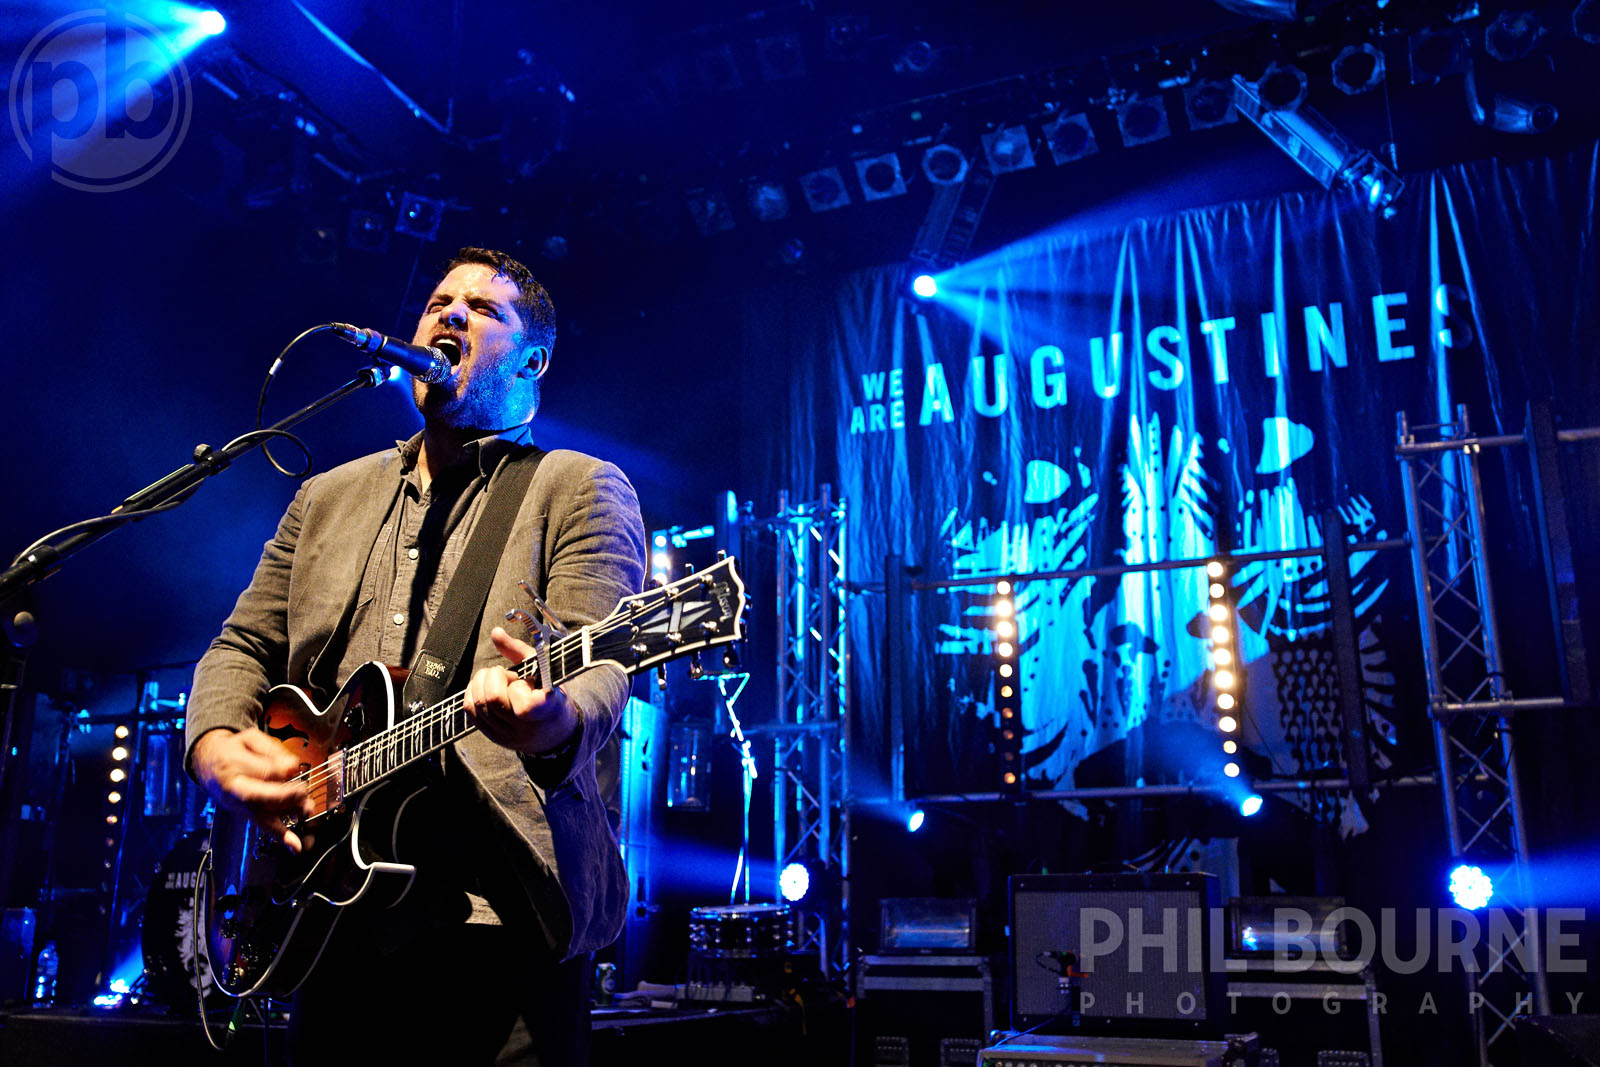 006_Live_Music_Photographer_London_We_Are_Augustines_001.jpg